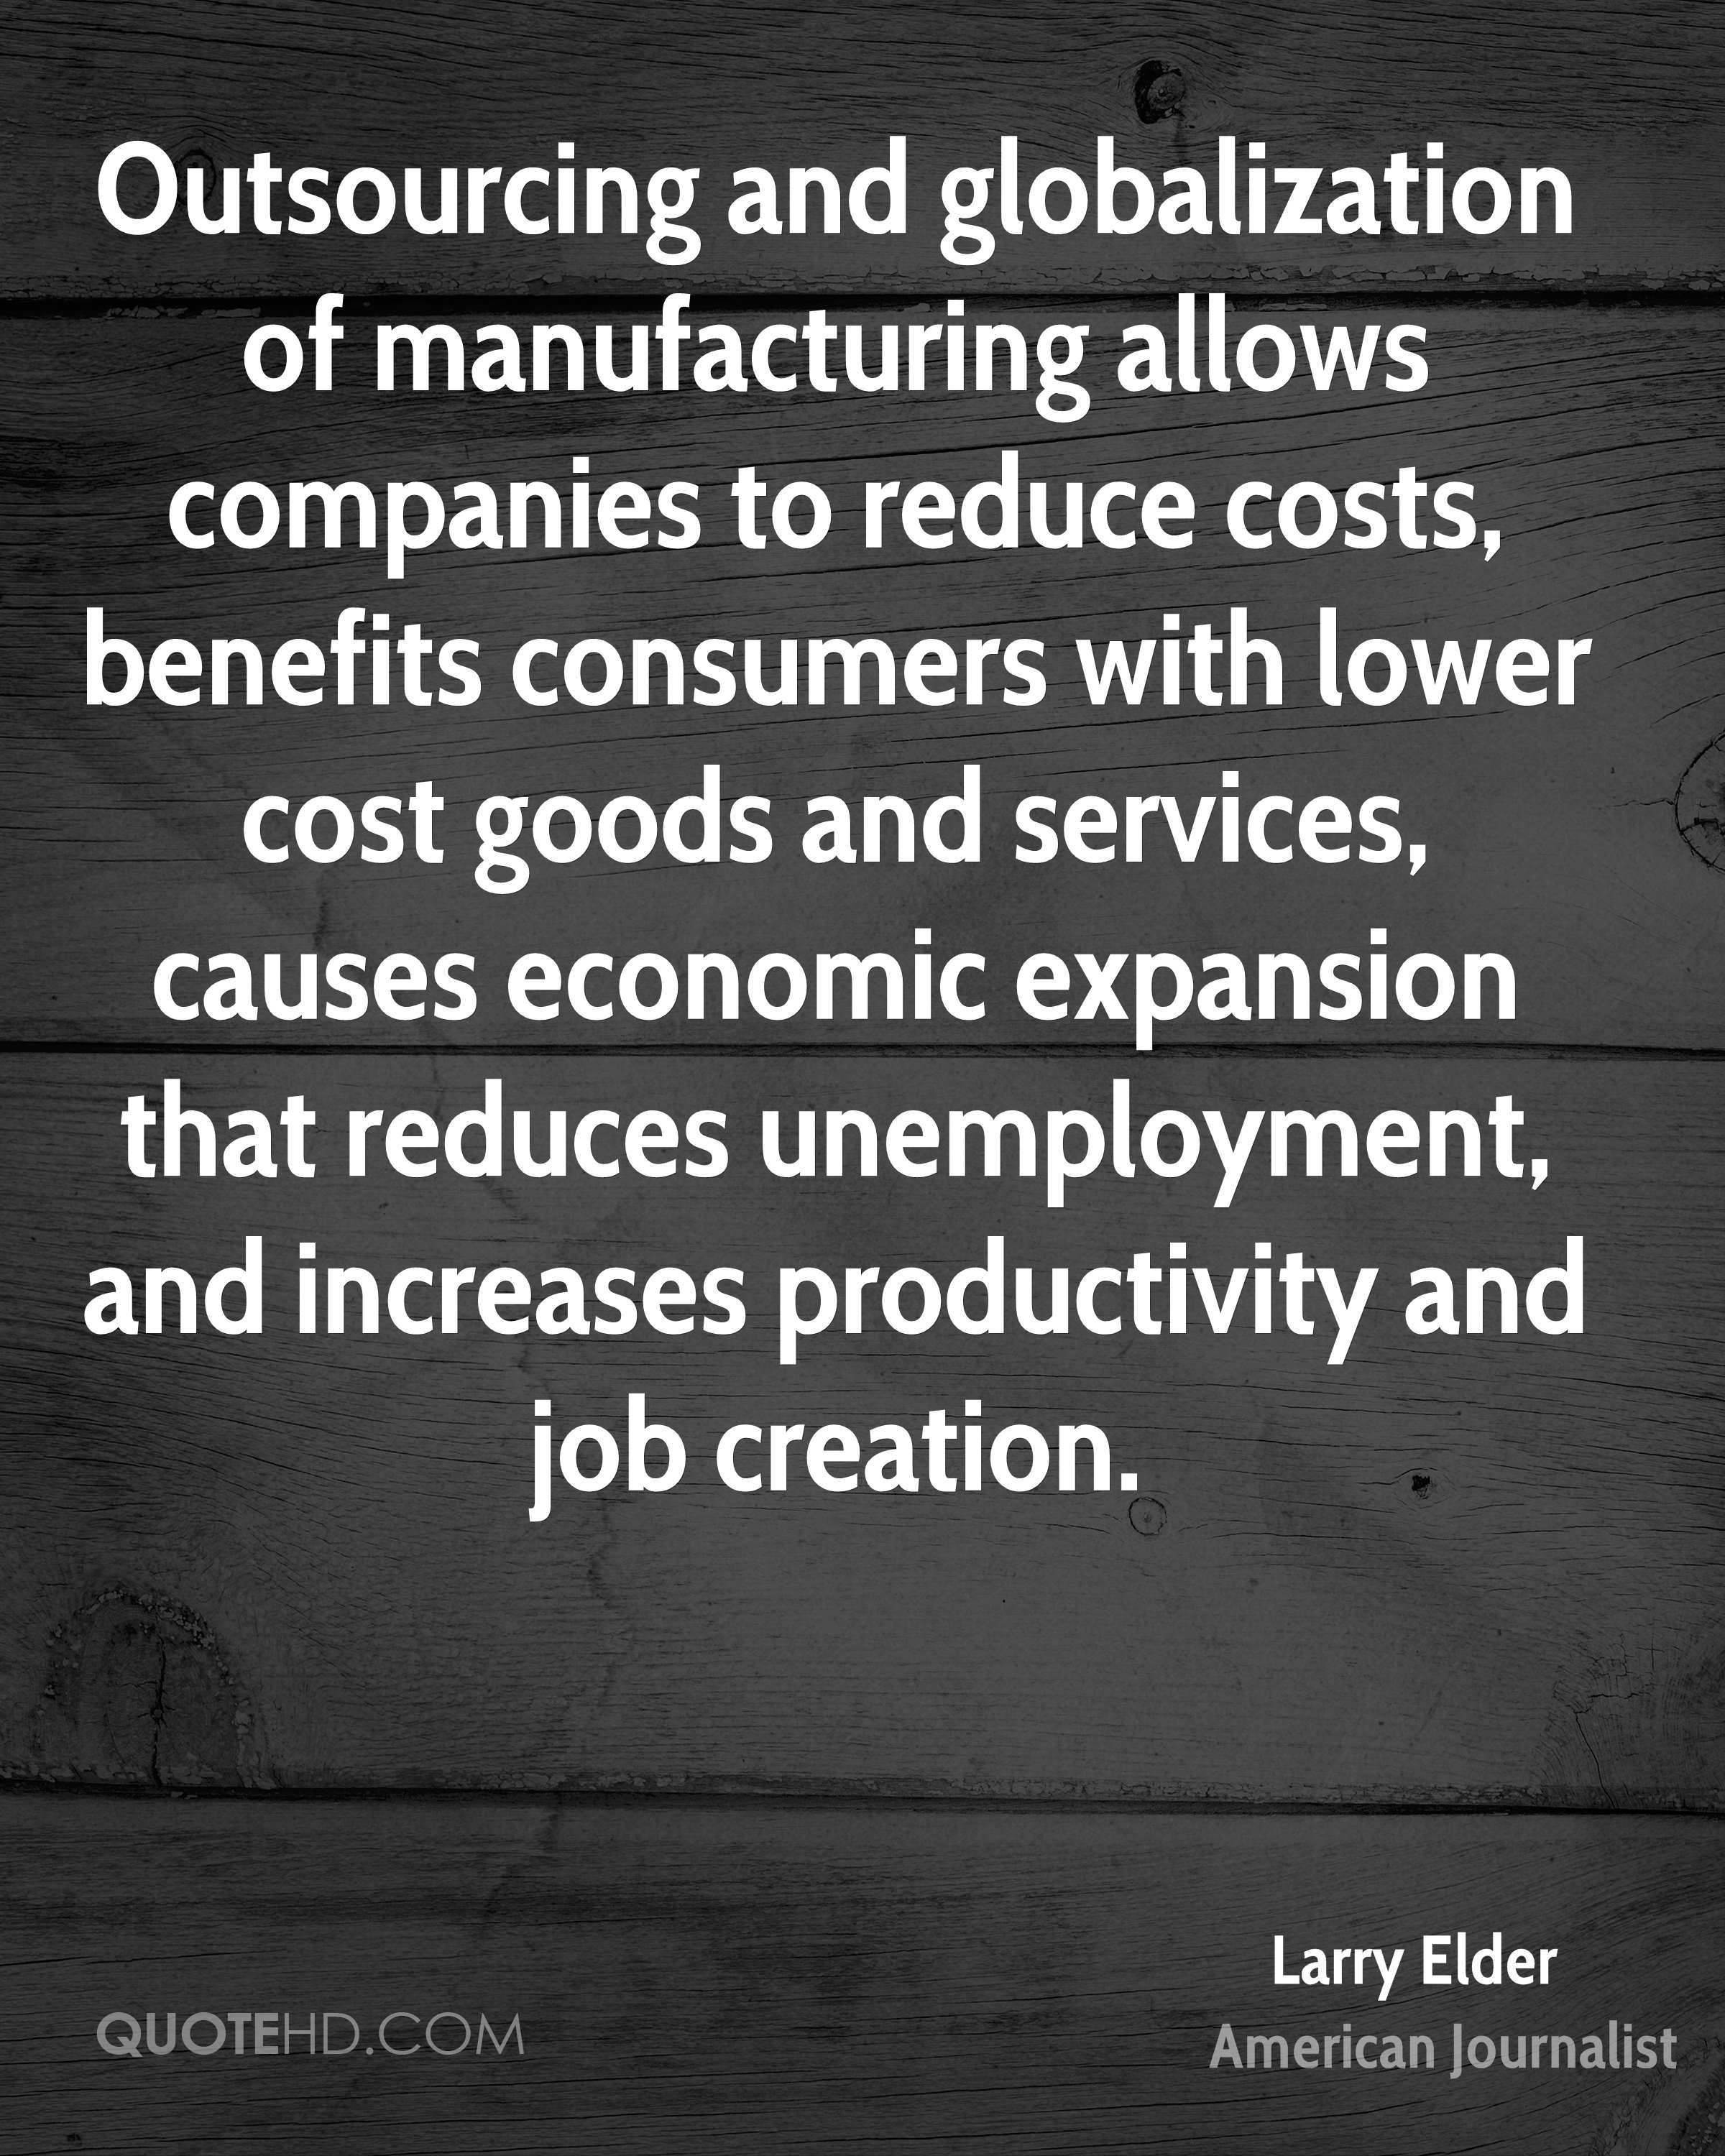 Outsourcing and globalization of manufacturing allows companies to reduce costs, benefits consumers with lower cost goods and services, causes economic expansion that reduces unemployment, and increases productivity and job creation.